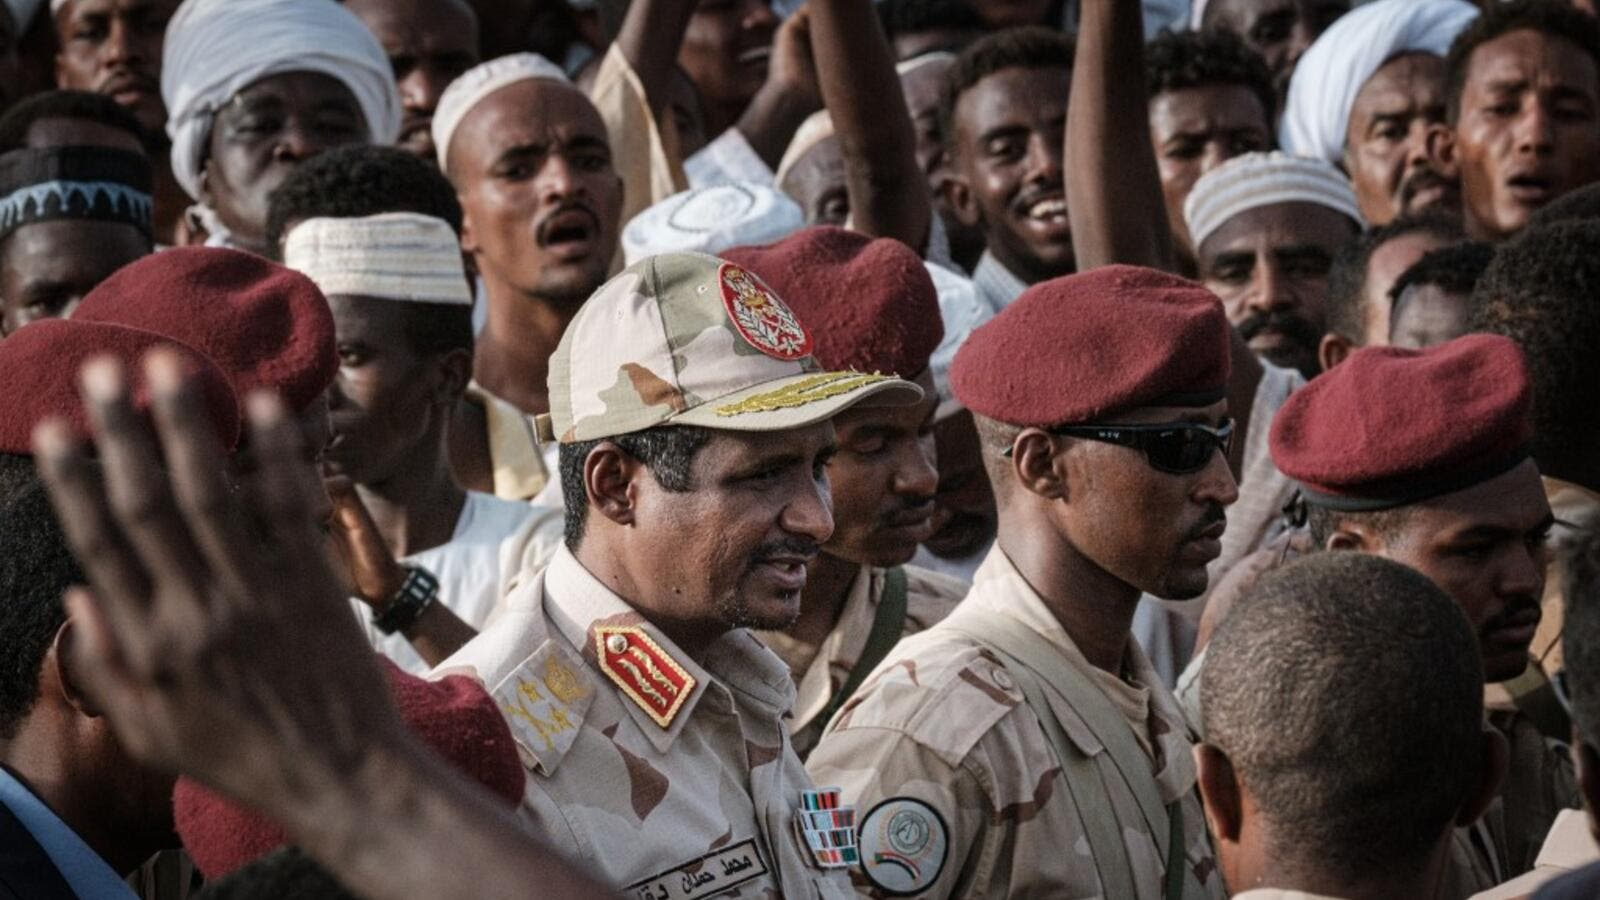 Mohamed Hamdan Dagalo, known as Himediti, deputy head of Sudan's ruling Transitional Military Council (TMC) and commander of the Rapid Support Forces (RSF) paramilitaries, arrives to give a speech during a rally in the village of Abraq, about 60 kilometers northwest of Khartoum, on June 22, 2019. (Yasuyoshi CHIBA / AFP)